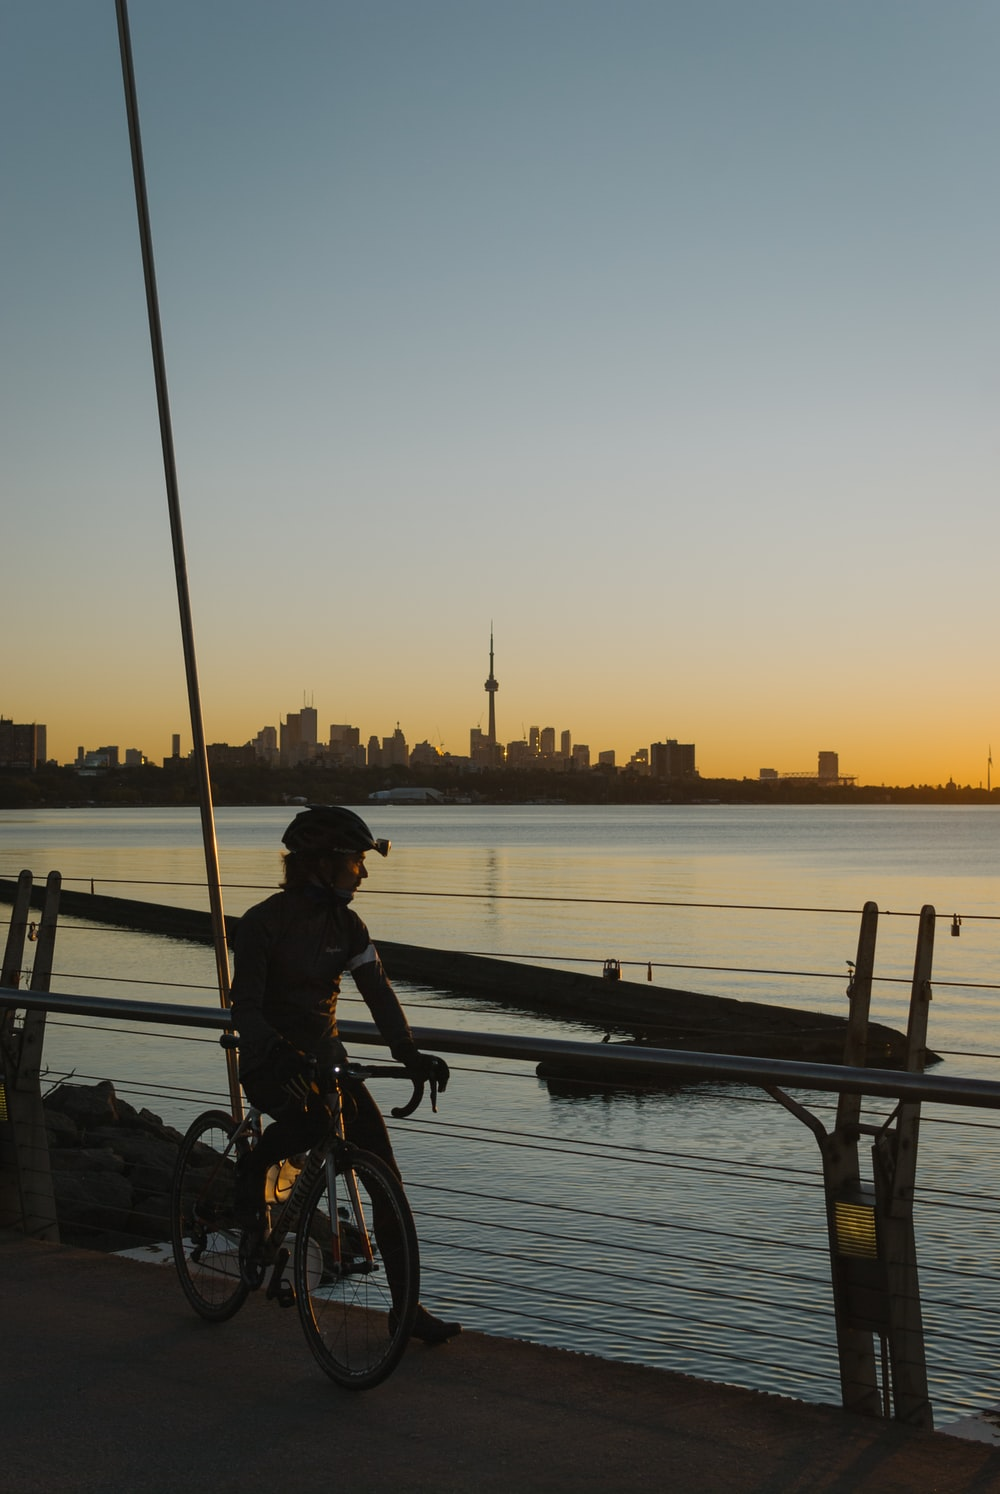 man in black jacket riding bicycle near body of water during sunset